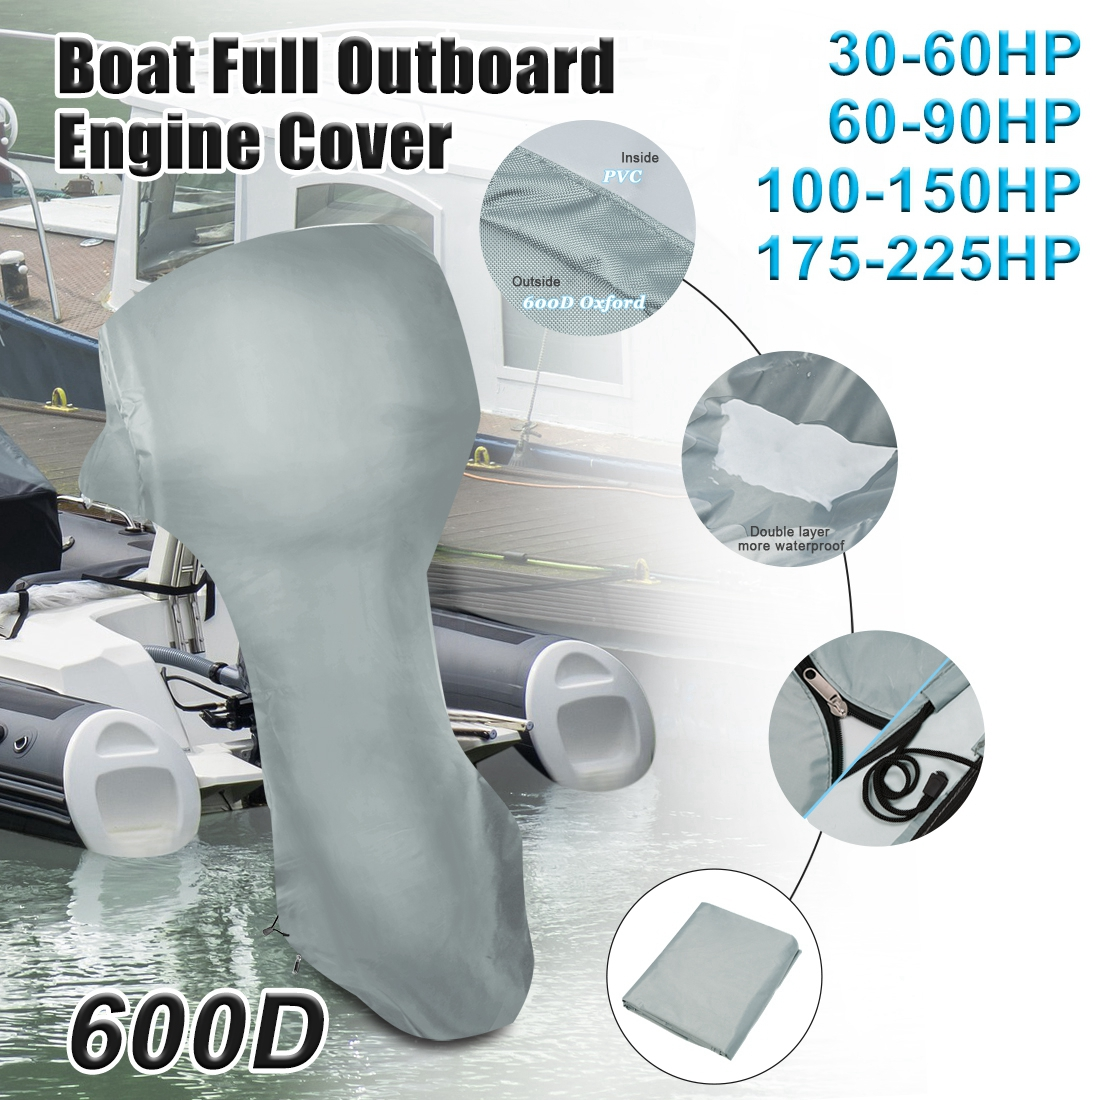 Boat Full Outboard Engine Motor Cover Fits Up to 60-90HP